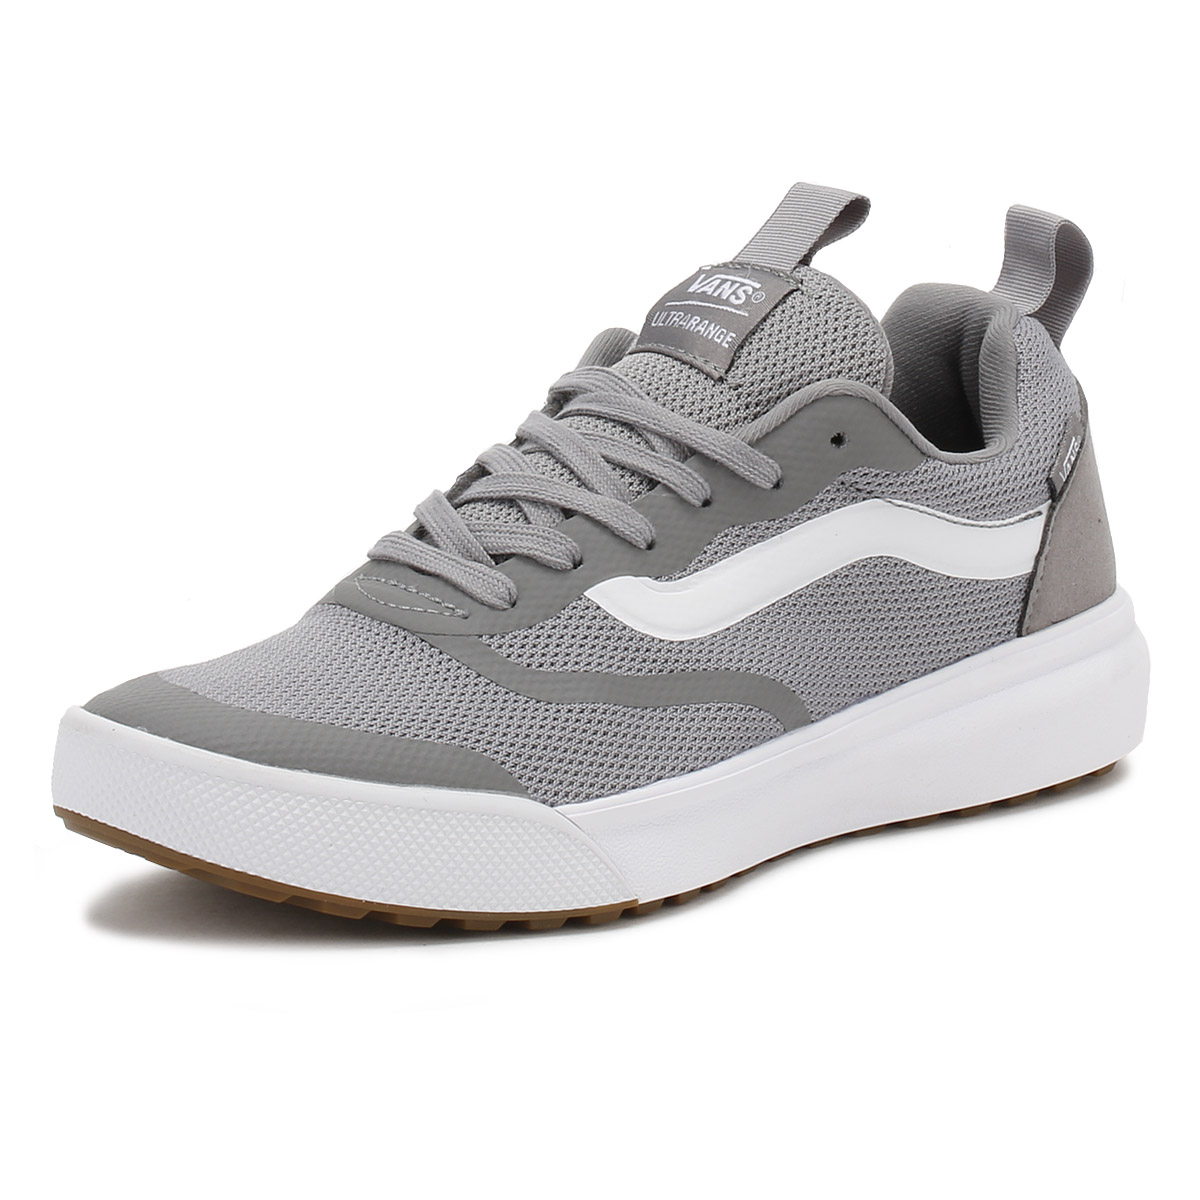 can vans be running shoes